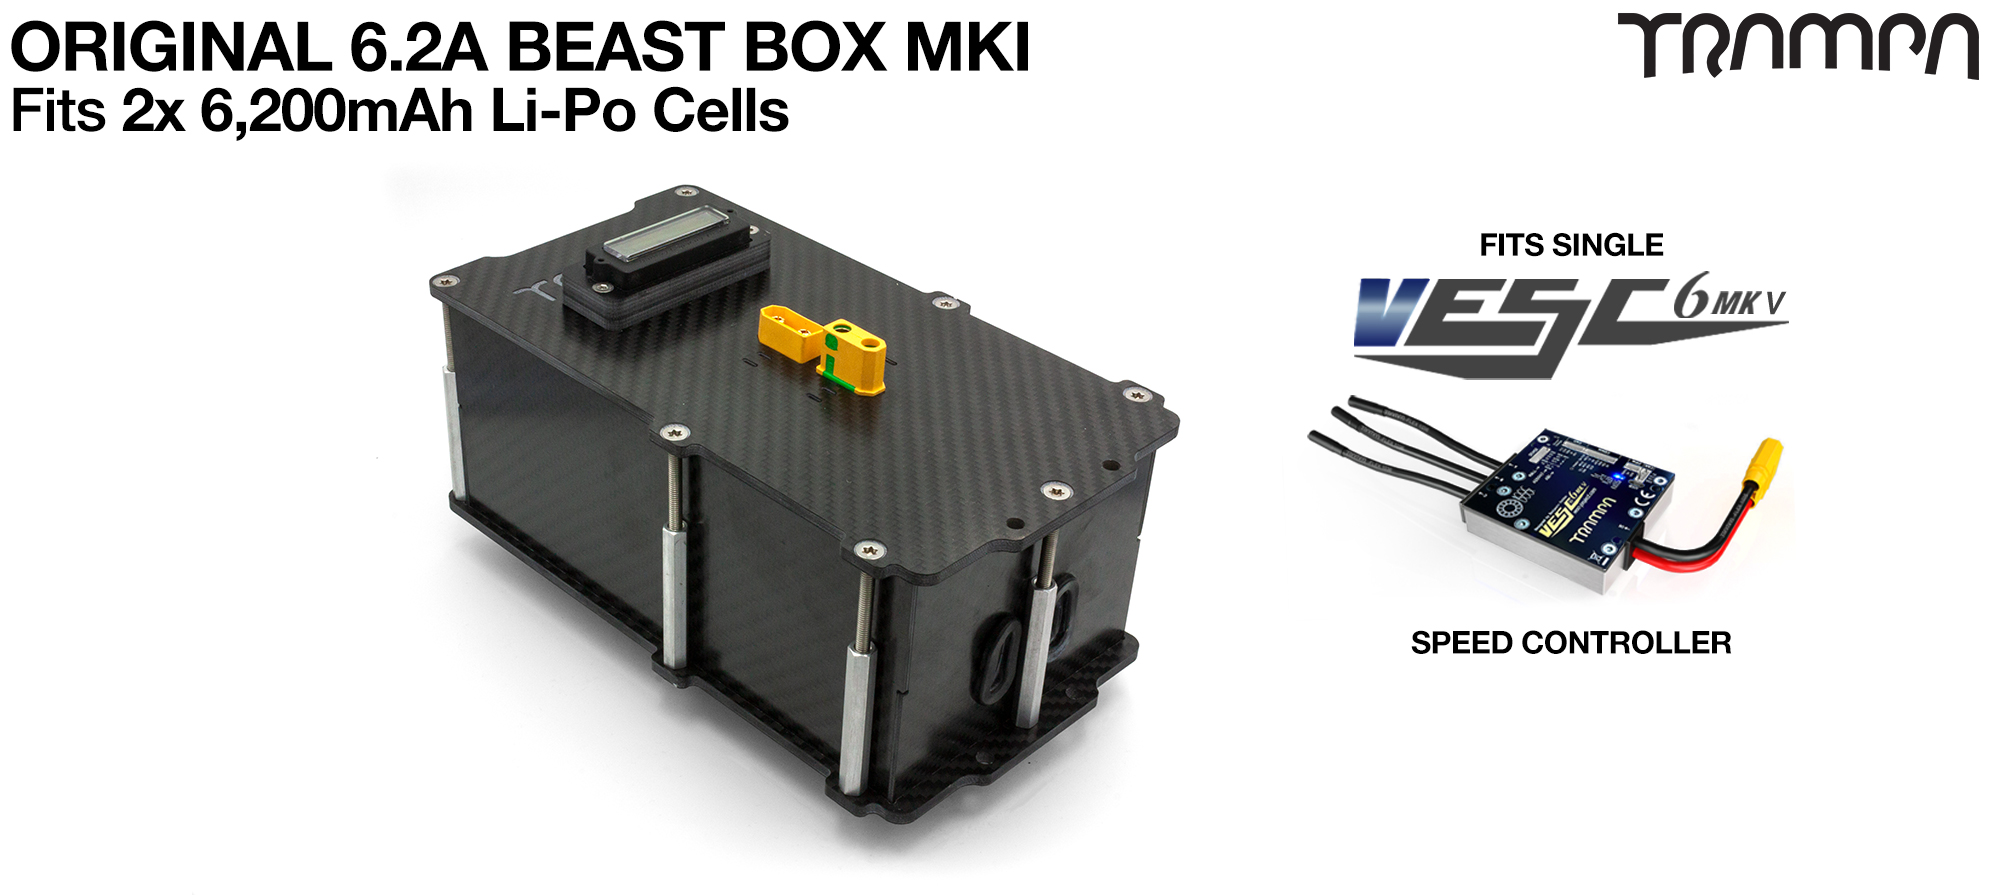 BEAST Box to fit 2x Zippy Compact 6200 mAh cells with Internal VESC Housing - AWESOME